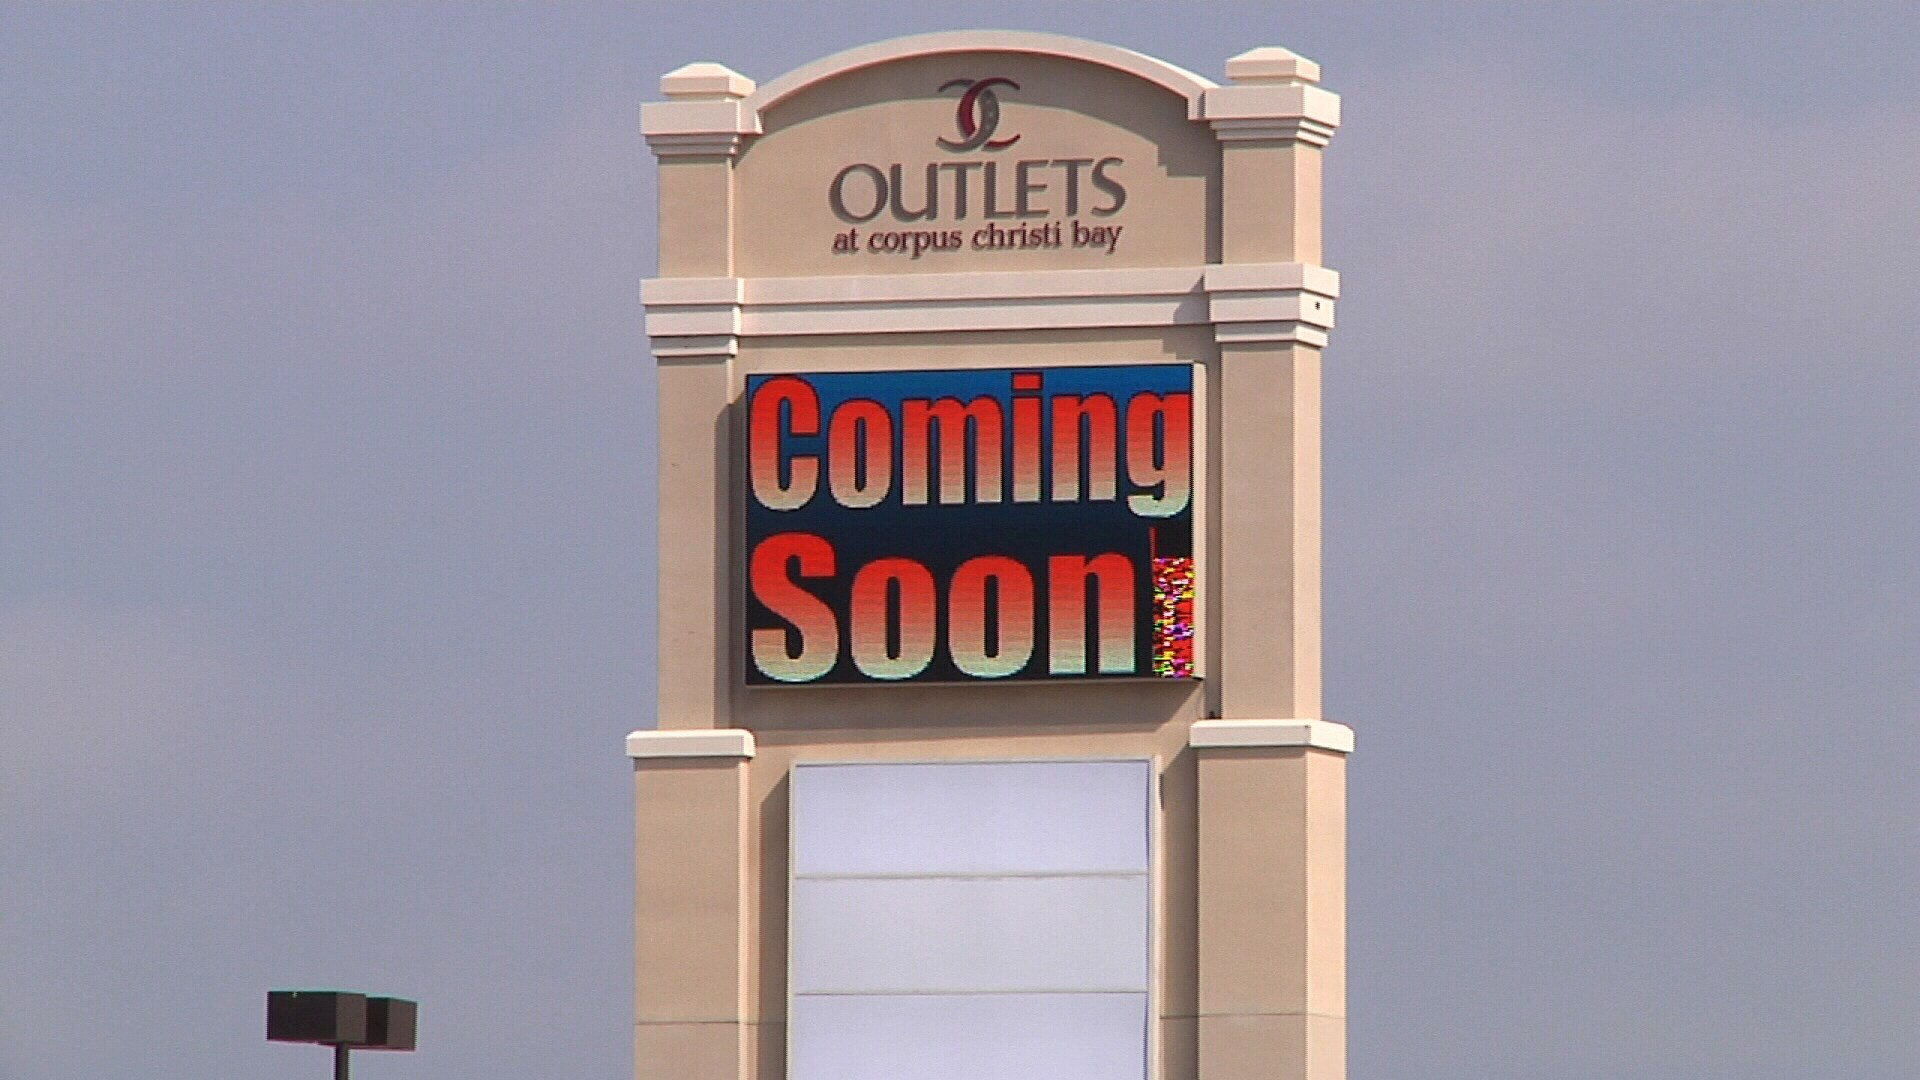 Grand opening scheduled for March 2, 2017 for the Outlets at Corpus Christi Bay.